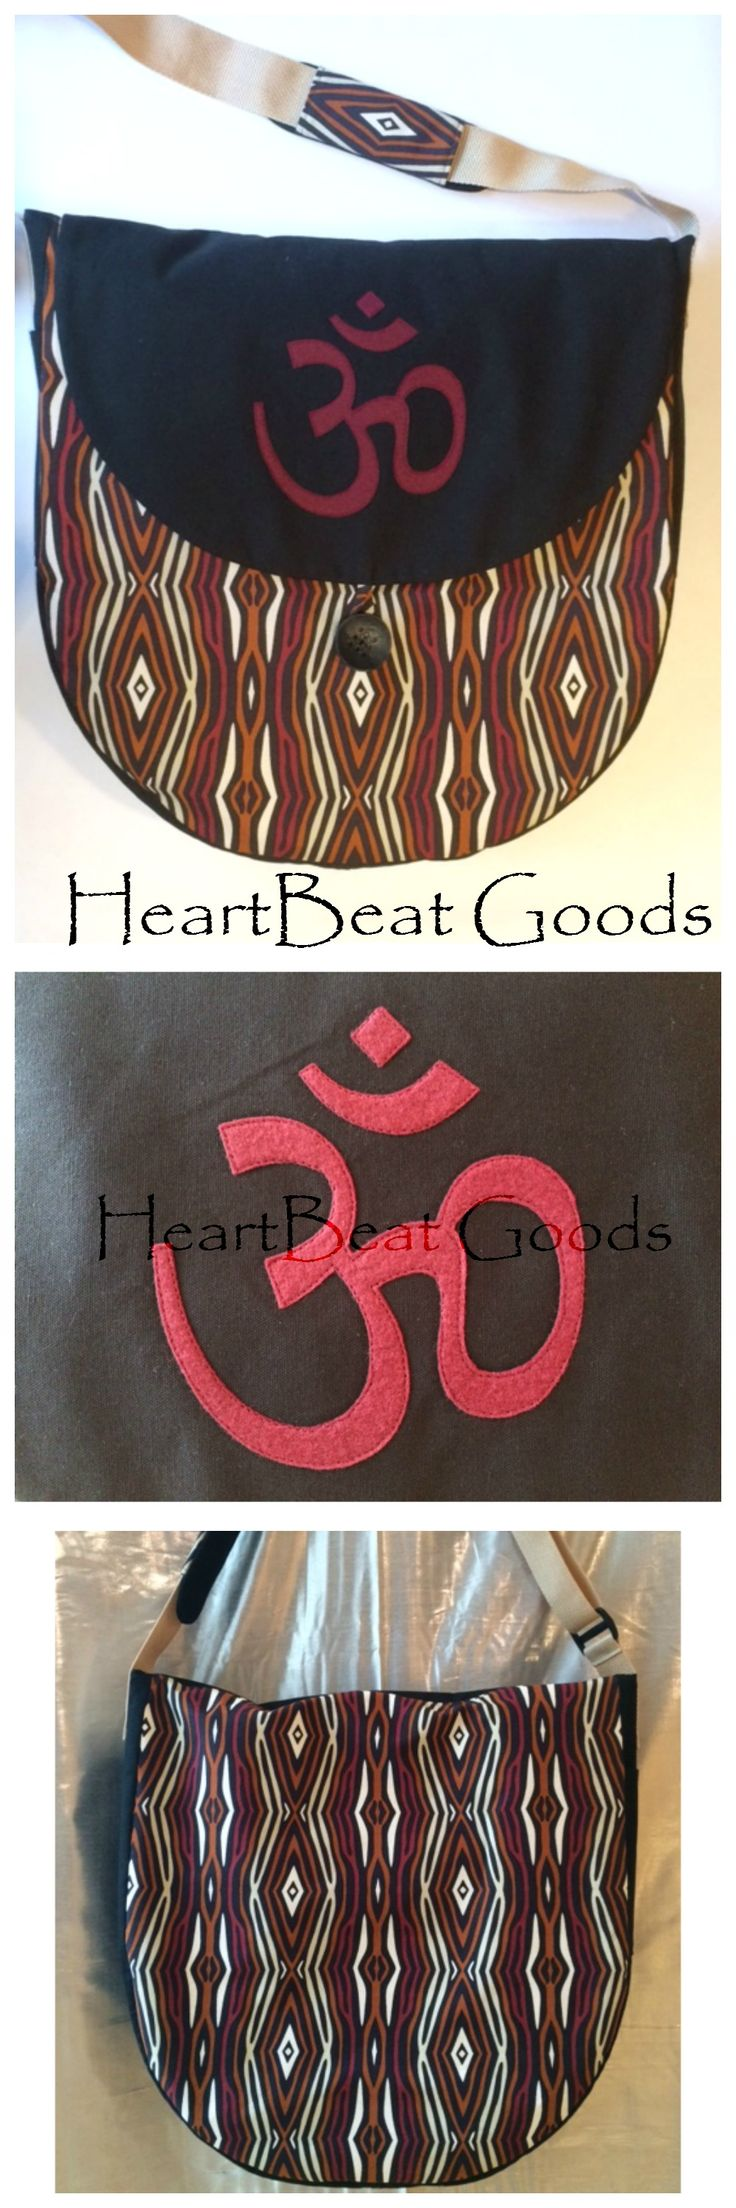 How do you take care of your drum?   https://www.etsy.com/shop/HeartBeatGoods?ref=hdr_shop_menu